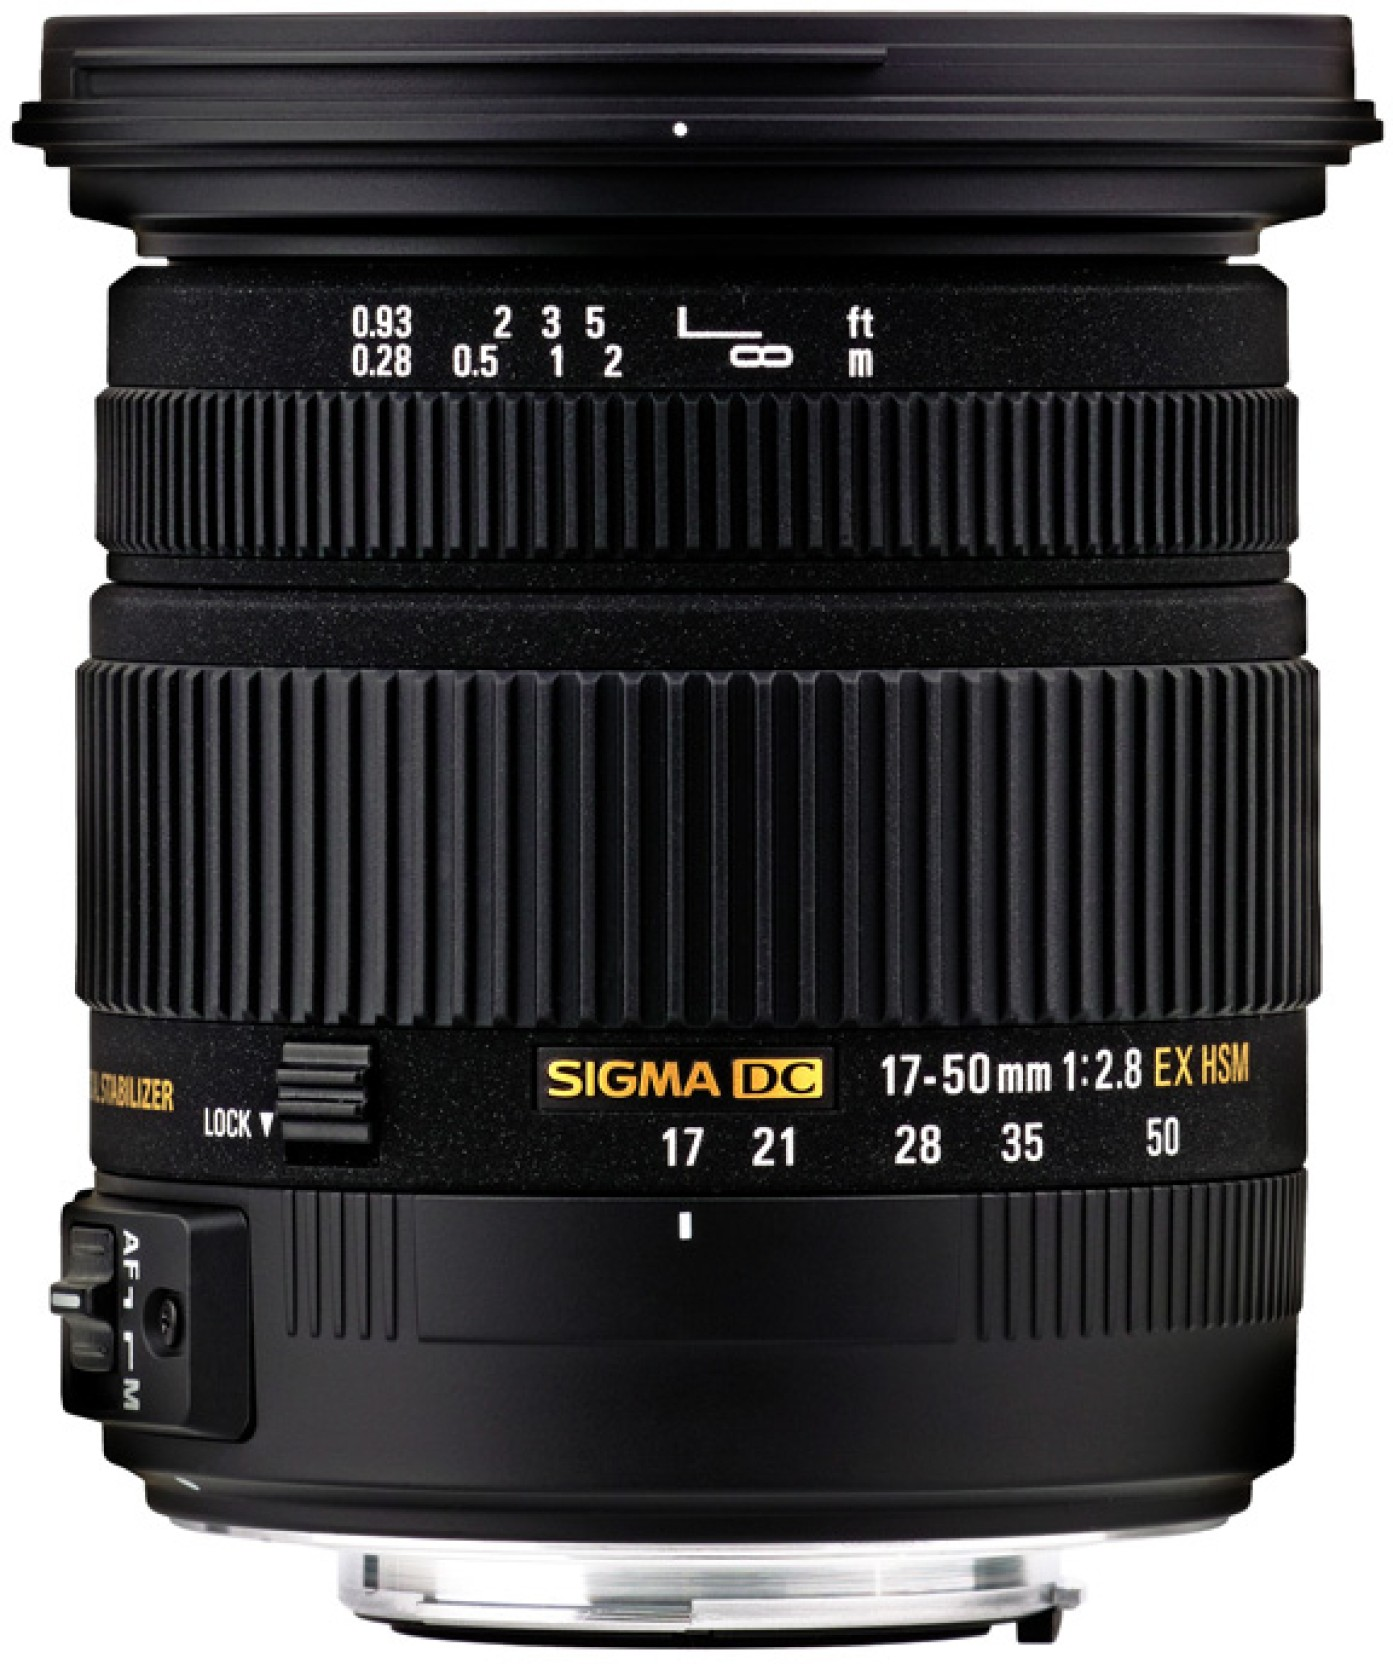 Sigma 17 50 Mm F28 Ex Dc Os Lens Tamron Sp 50mm F 28 Xr Di Ii Ld Aspherical If Canon Eos Add To Cart